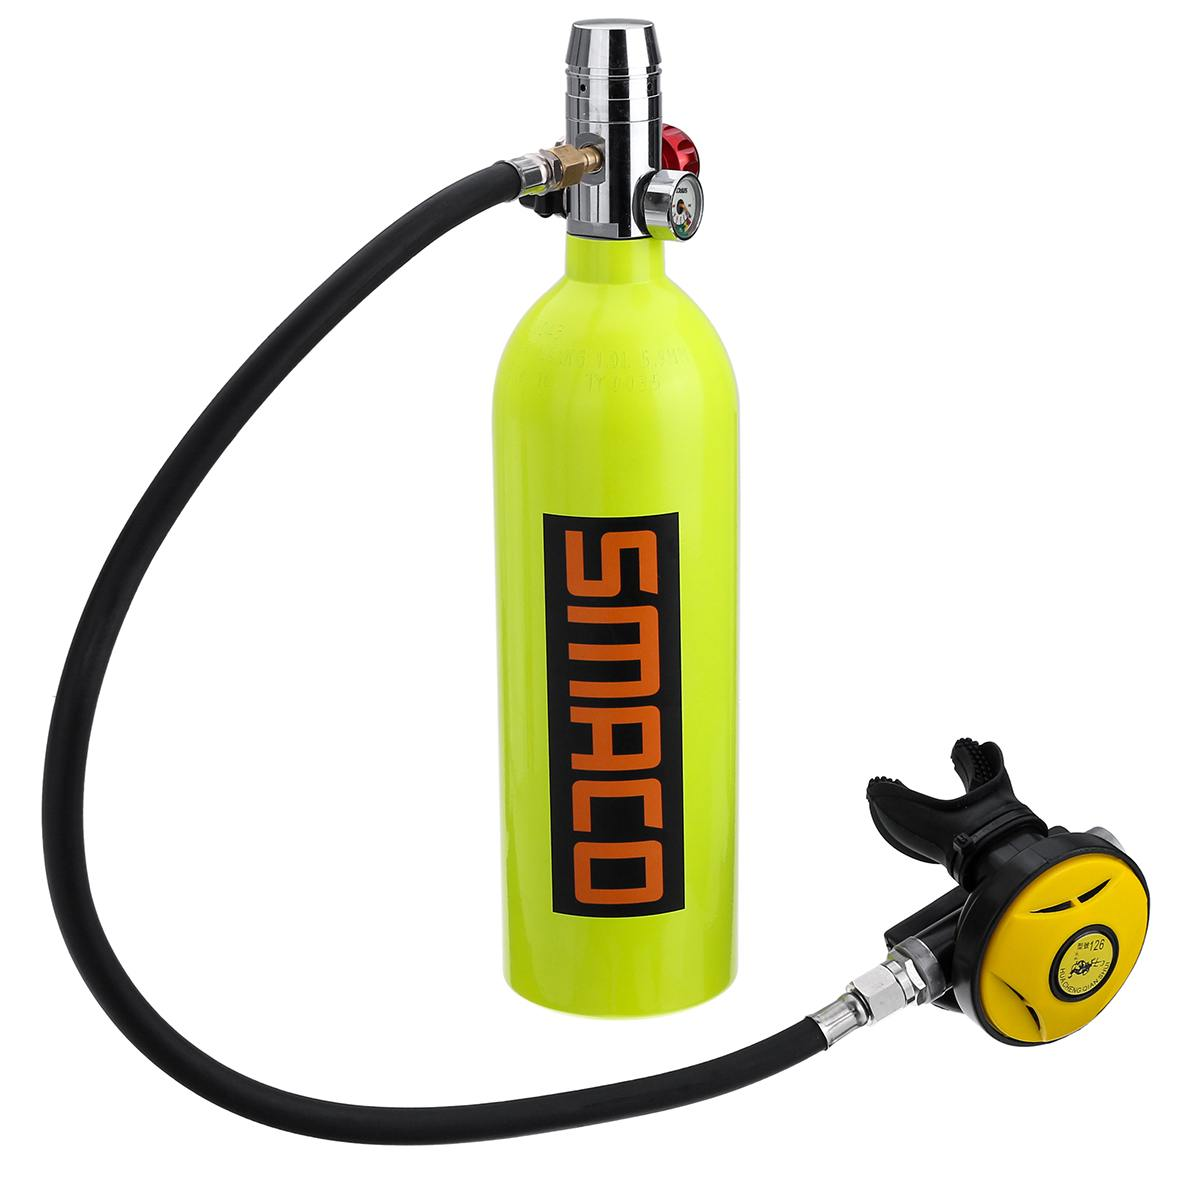 SMACO 1L Scuba Oxygen Cylinder Air Tank First Level Pressure Reducing Valve Second Level Snorkeling Breathing Valve Regulator